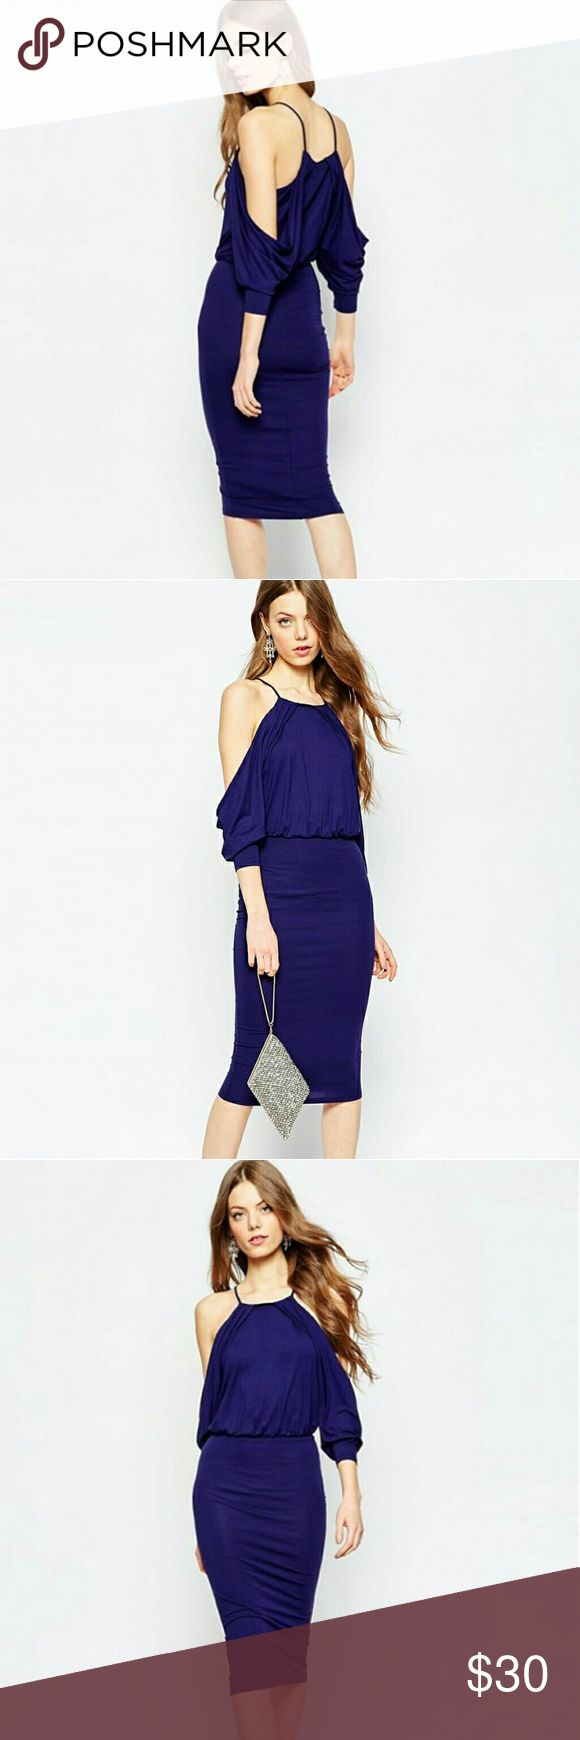 ASOS cold shoulder midi dress This is a Asos cold shoulder bodycon midi dress it is Navy Blue 95%polyester 5%elastane very sexy dress just in time for the great weather at don't pass this one up ladies bundle two items and receive a discount Asos  Dresses